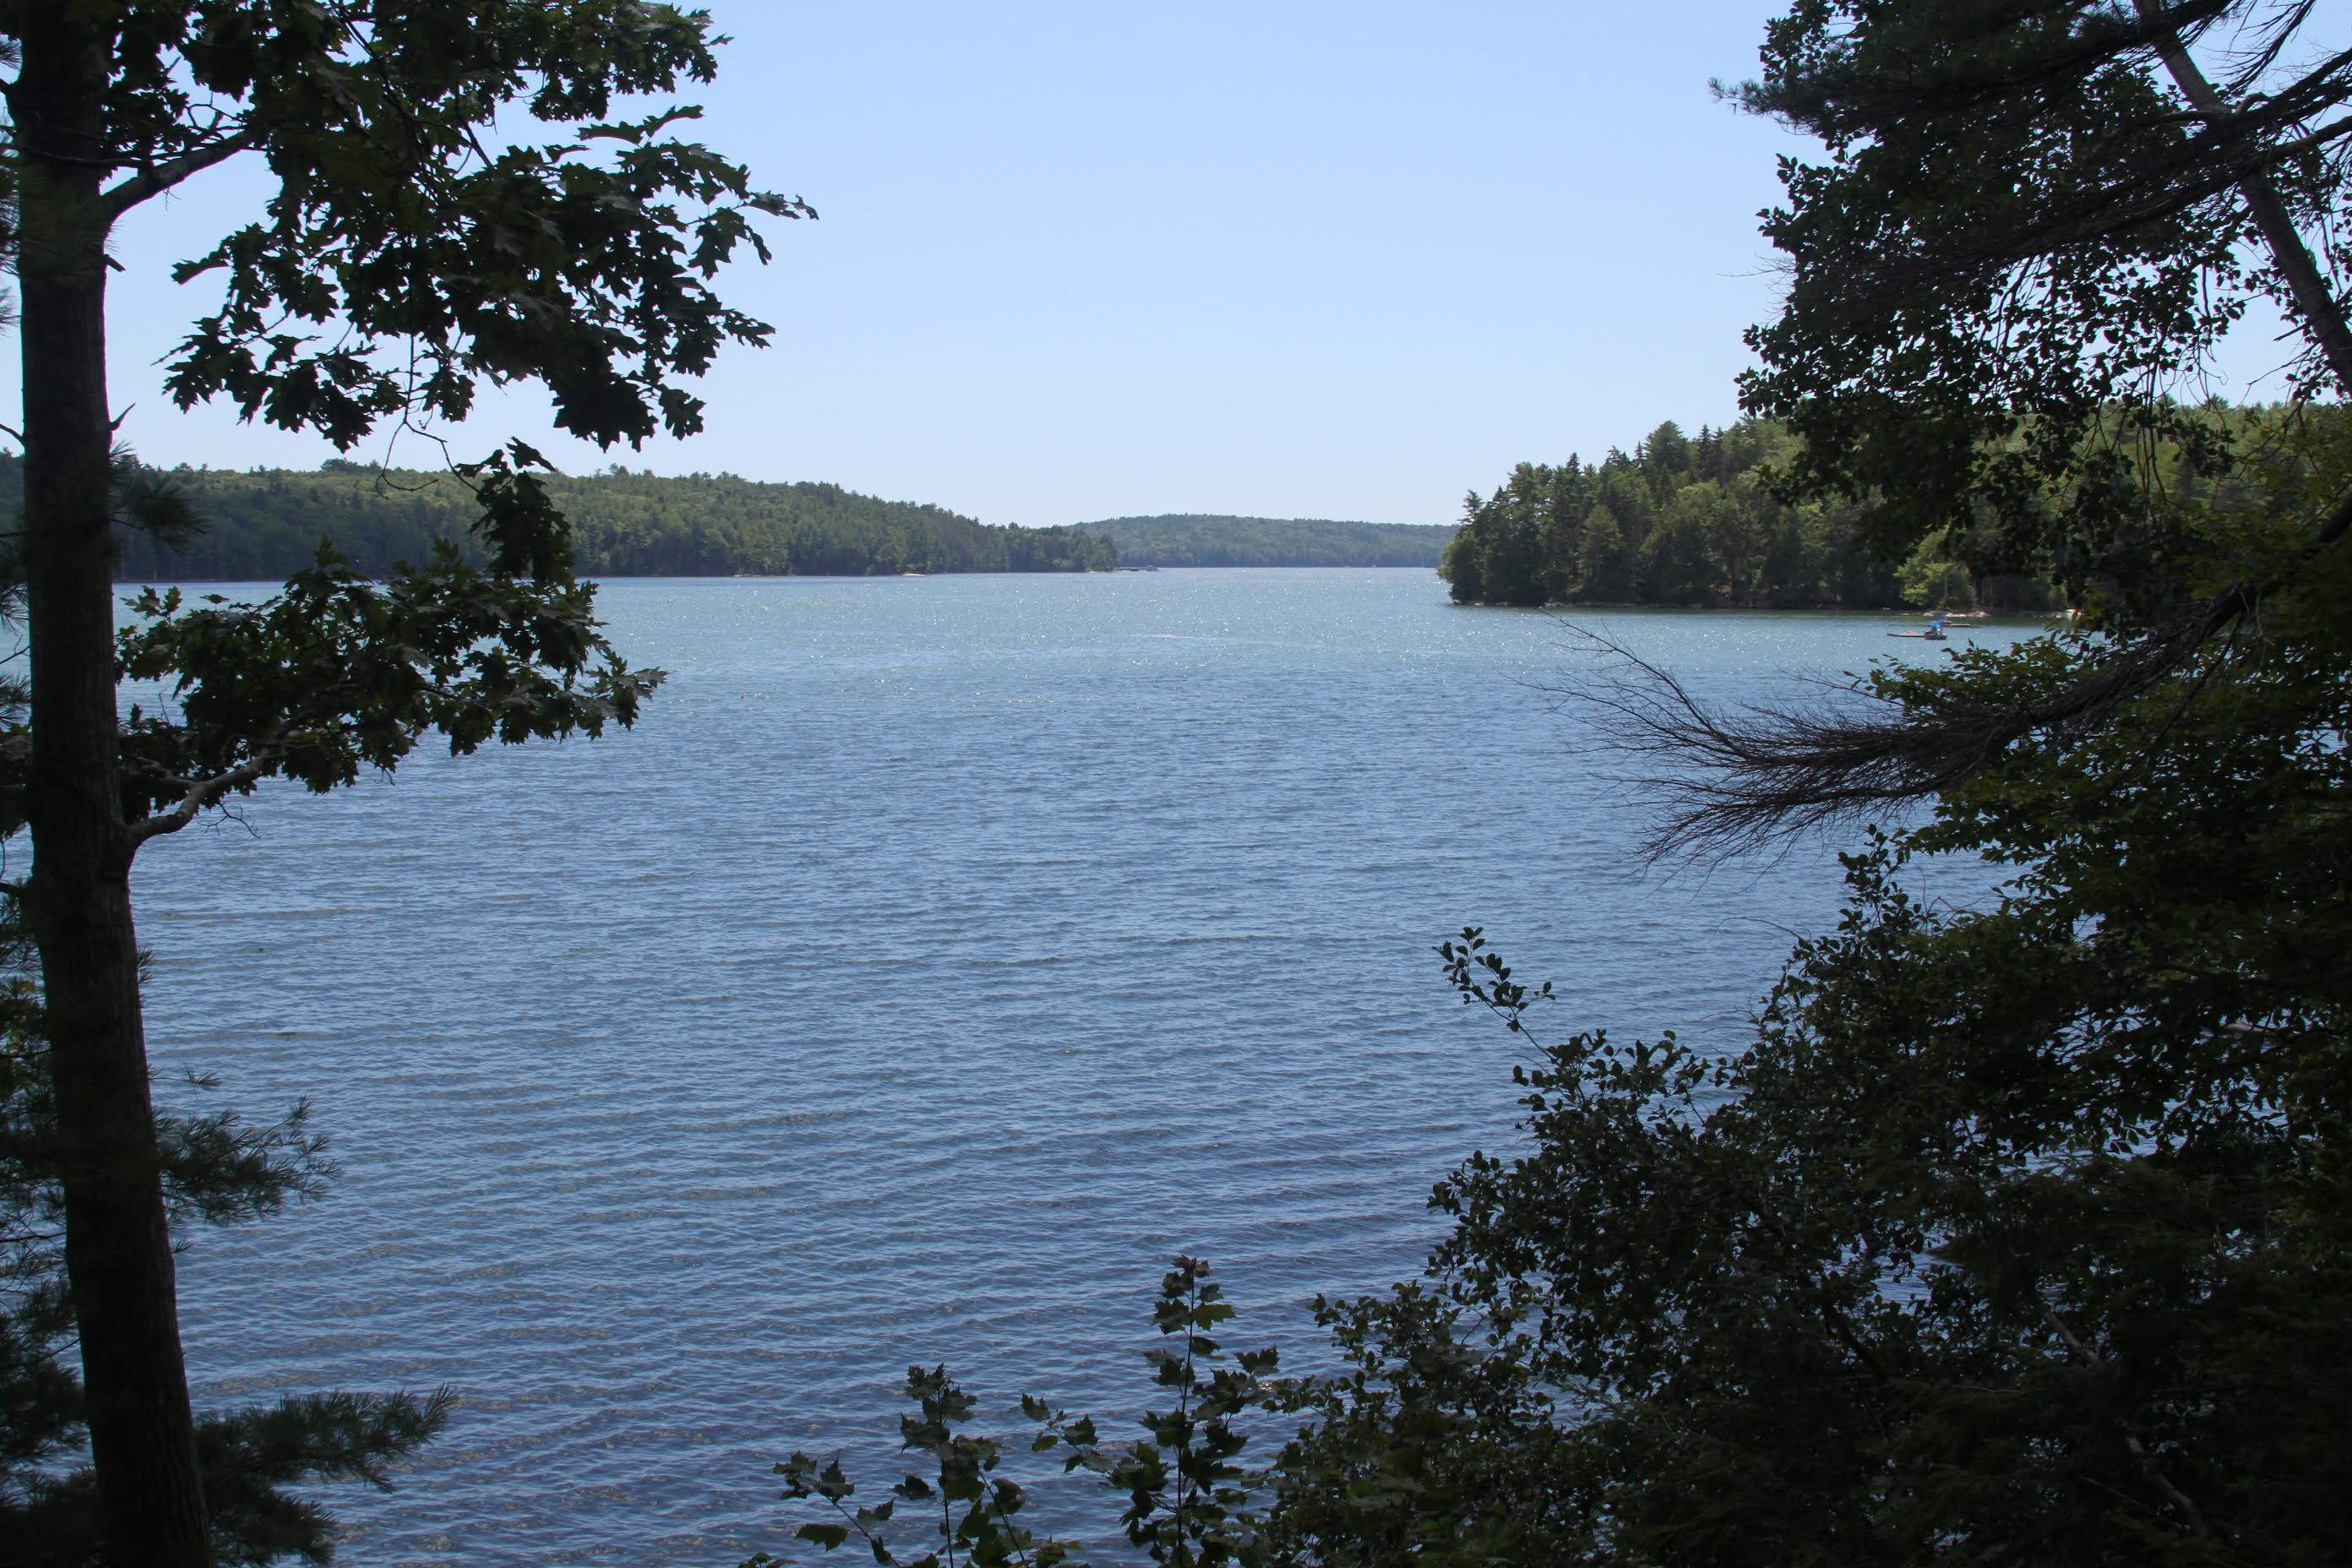 Land for Sale at 0 Emerson Farms Road 0 Emerson Farms Rd Edgecomb, Maine, 04556 United States